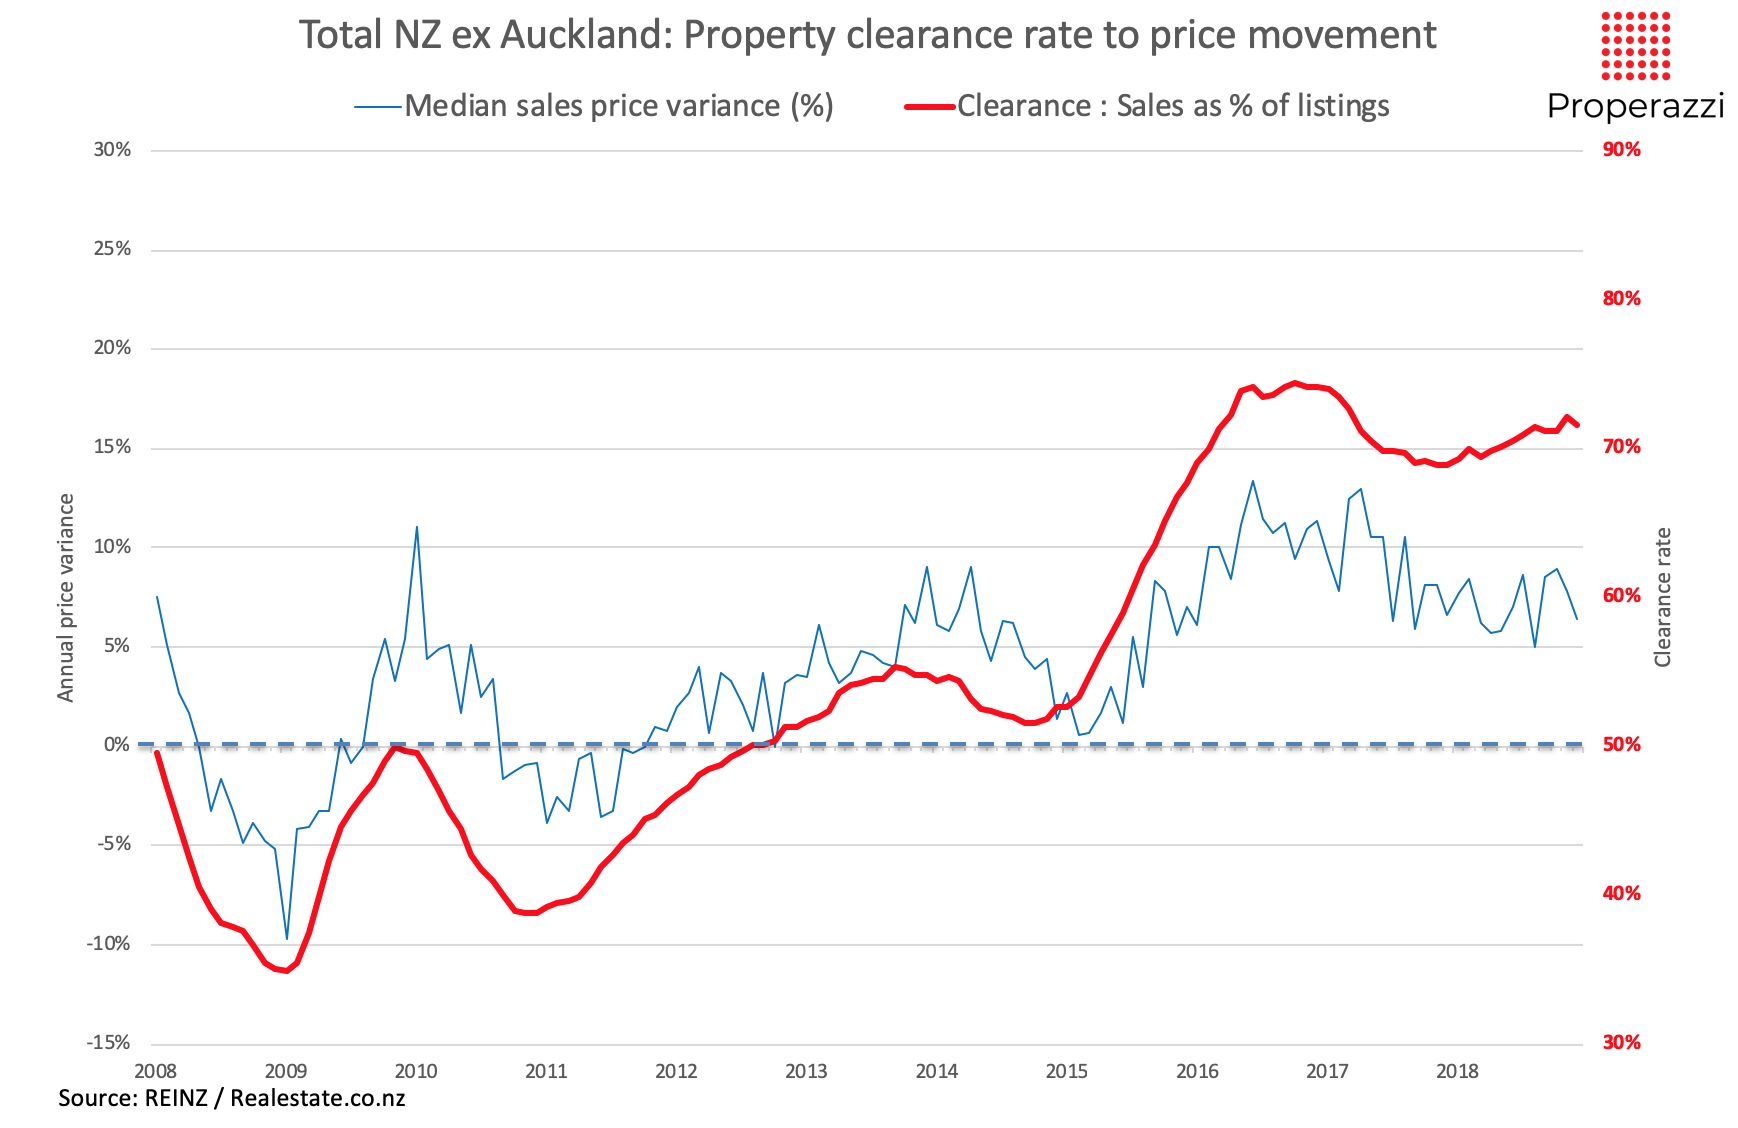 Clearance rate analysis of property sales to listings for NZ exc Auckland 2008 to 2018